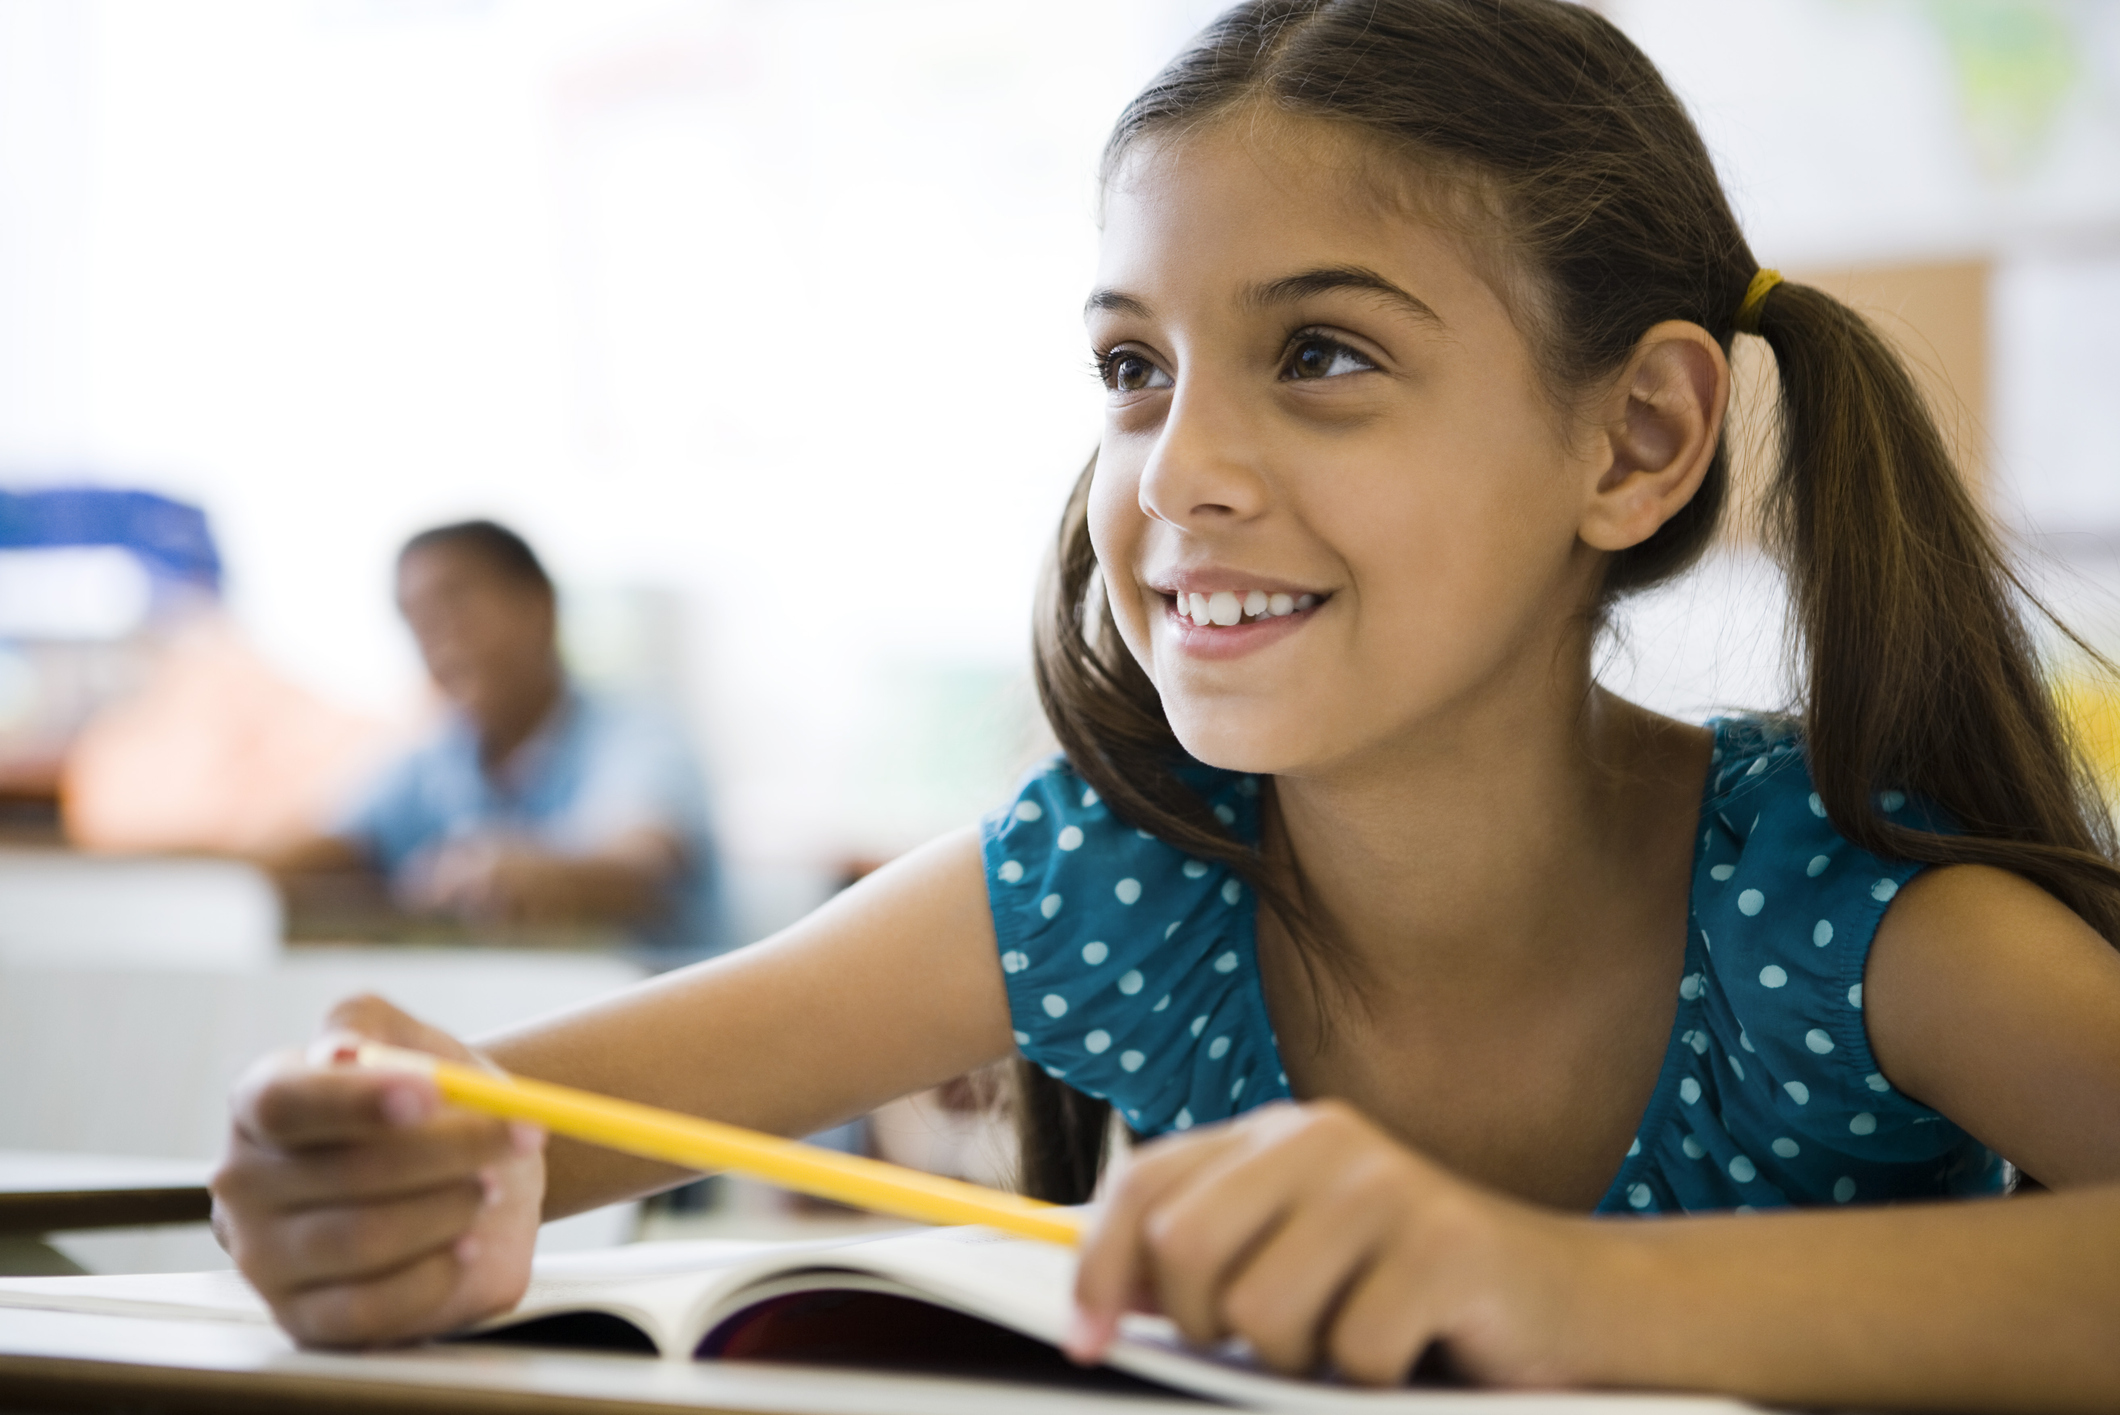 Positive School Culture: What Matters the Most in K-12 Education